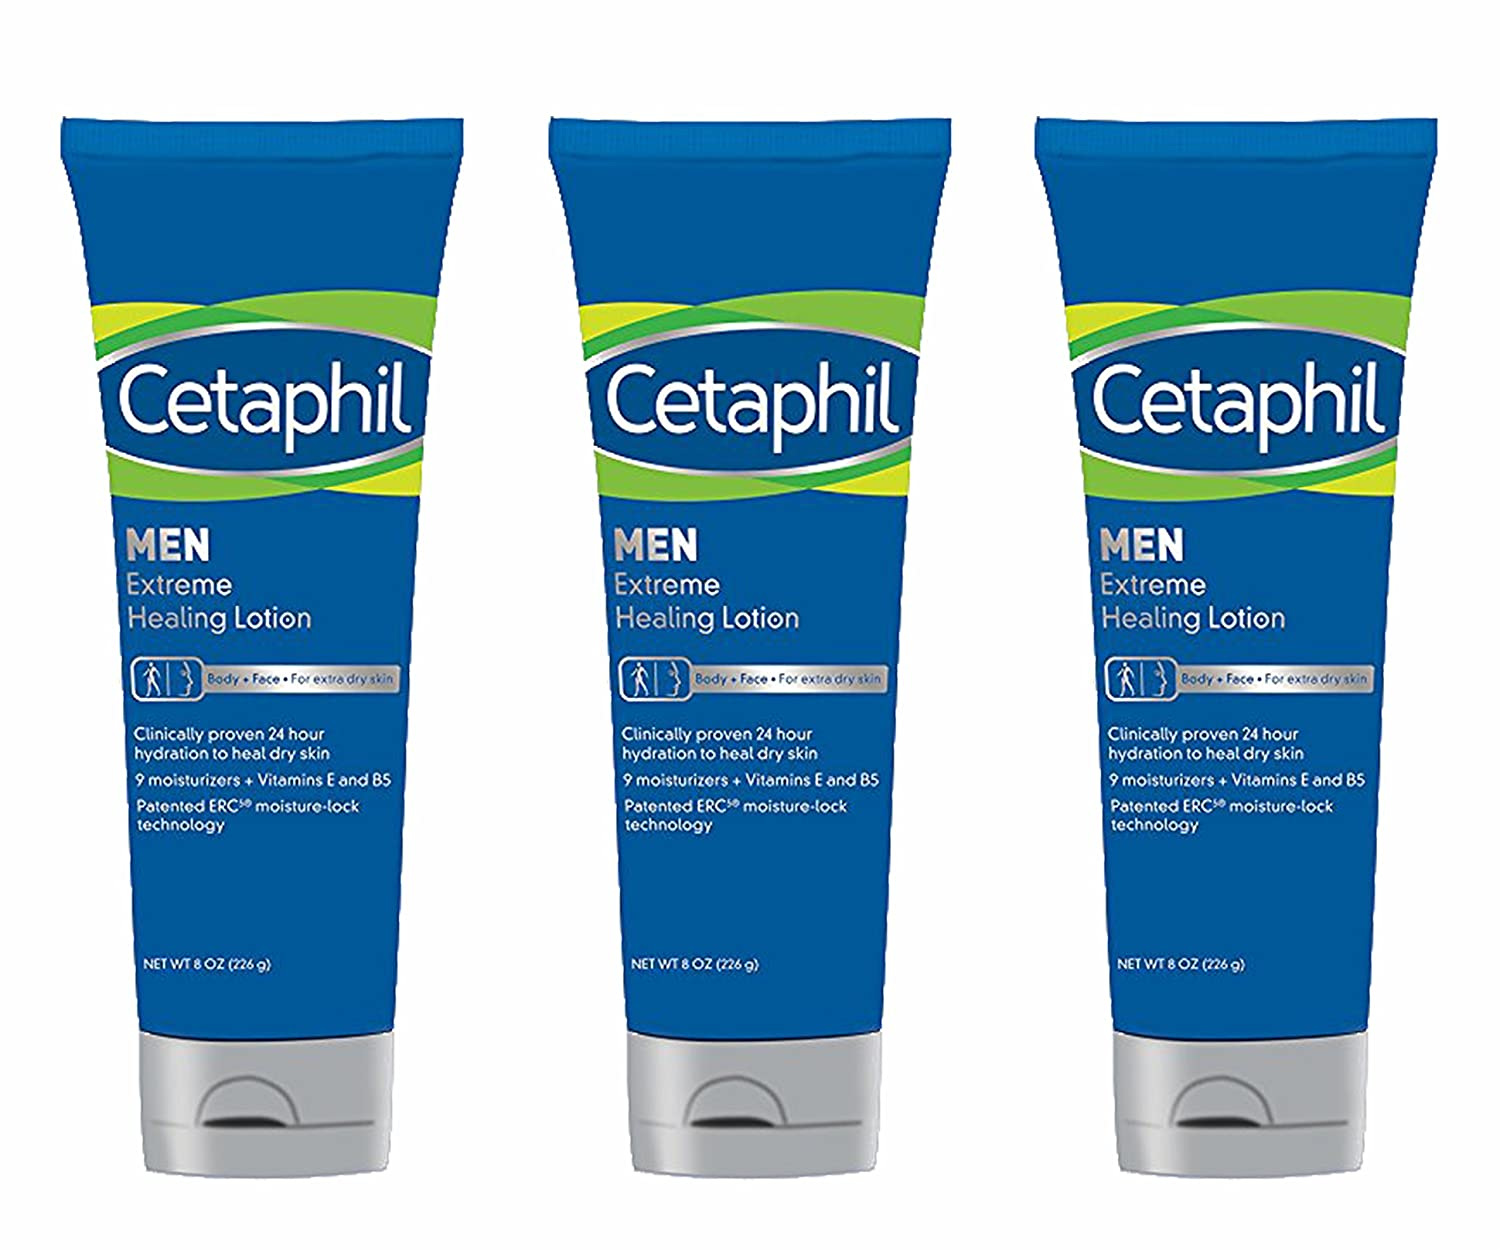 Cetaphil Men Extreme Healing Lotion 8 Ounce Pack Of 3 Moisturizing Cream Face Ampamp Body Beauty